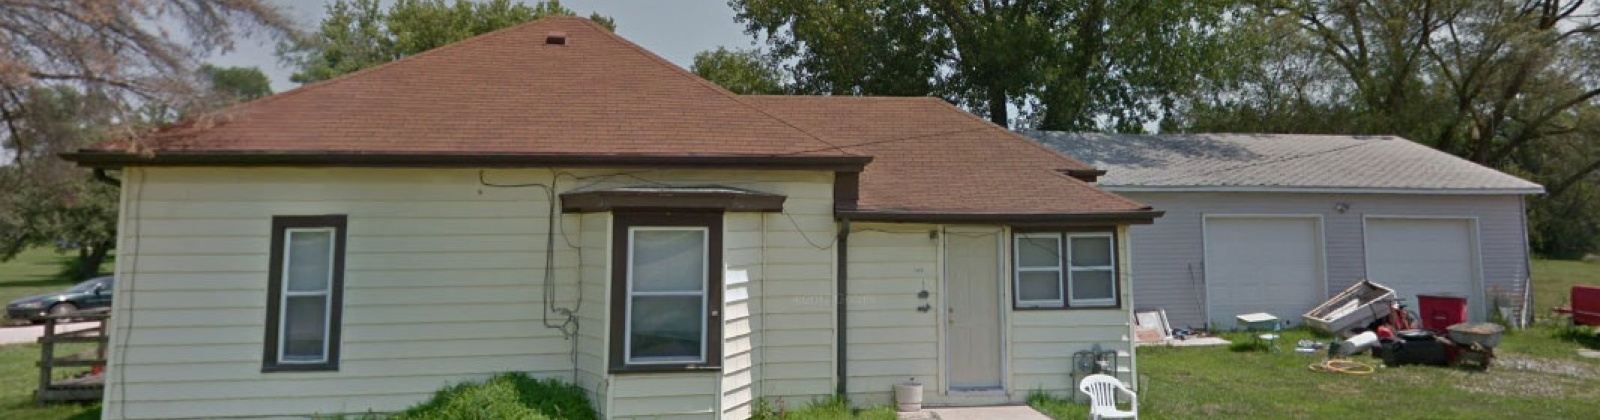 208 NE Railroad St,De Witt,NE,68341,3 Bedrooms Bedrooms,1 BathroomBathrooms,House,208 NE Railroad St,1005